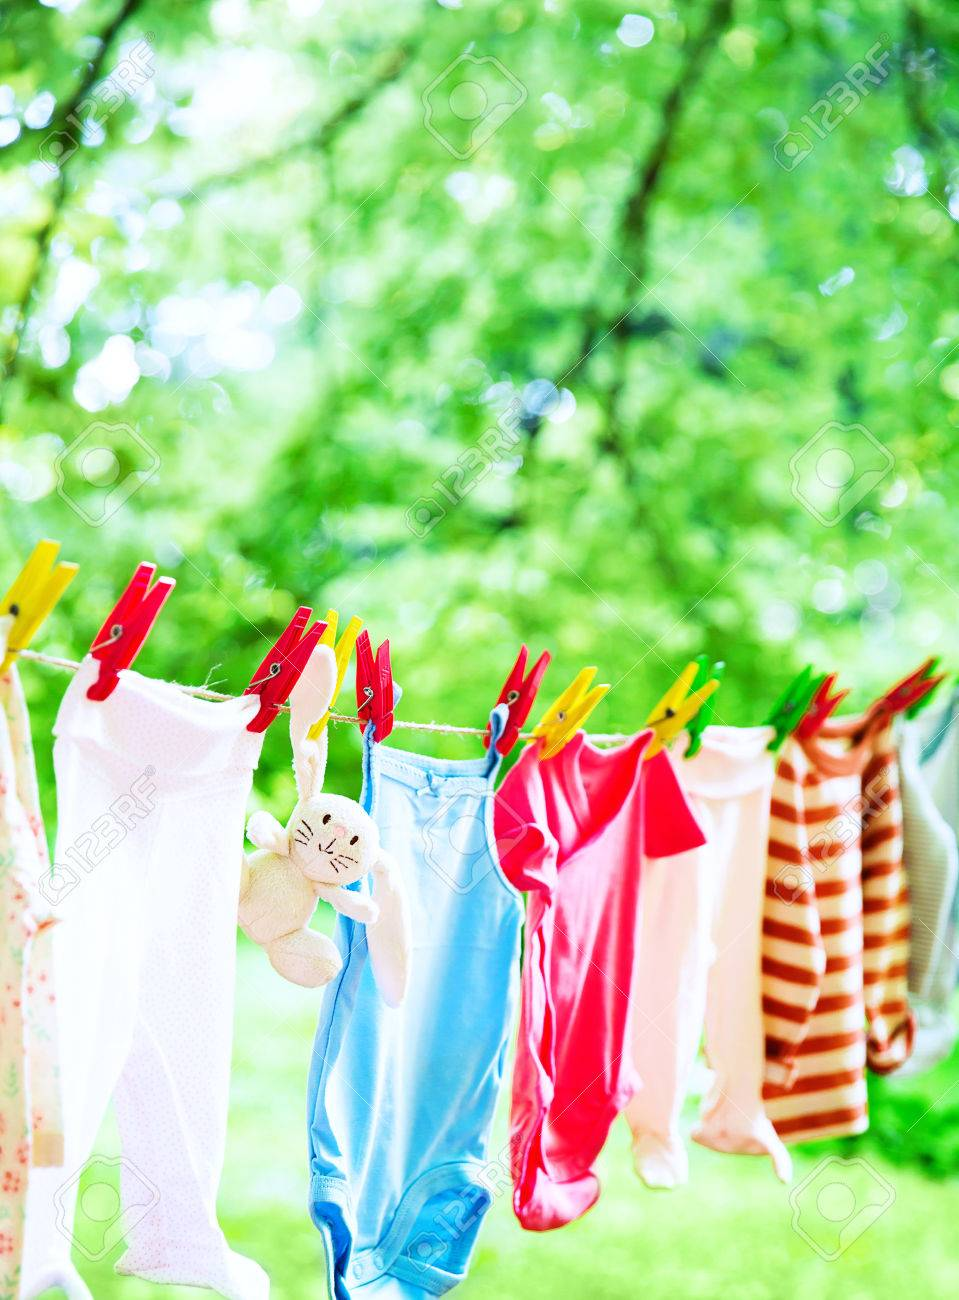 Baby cute clothes hanging on the clothesline outdoor. Child laundry hanging on line in garden on green background. Baby accessories. - 85254827